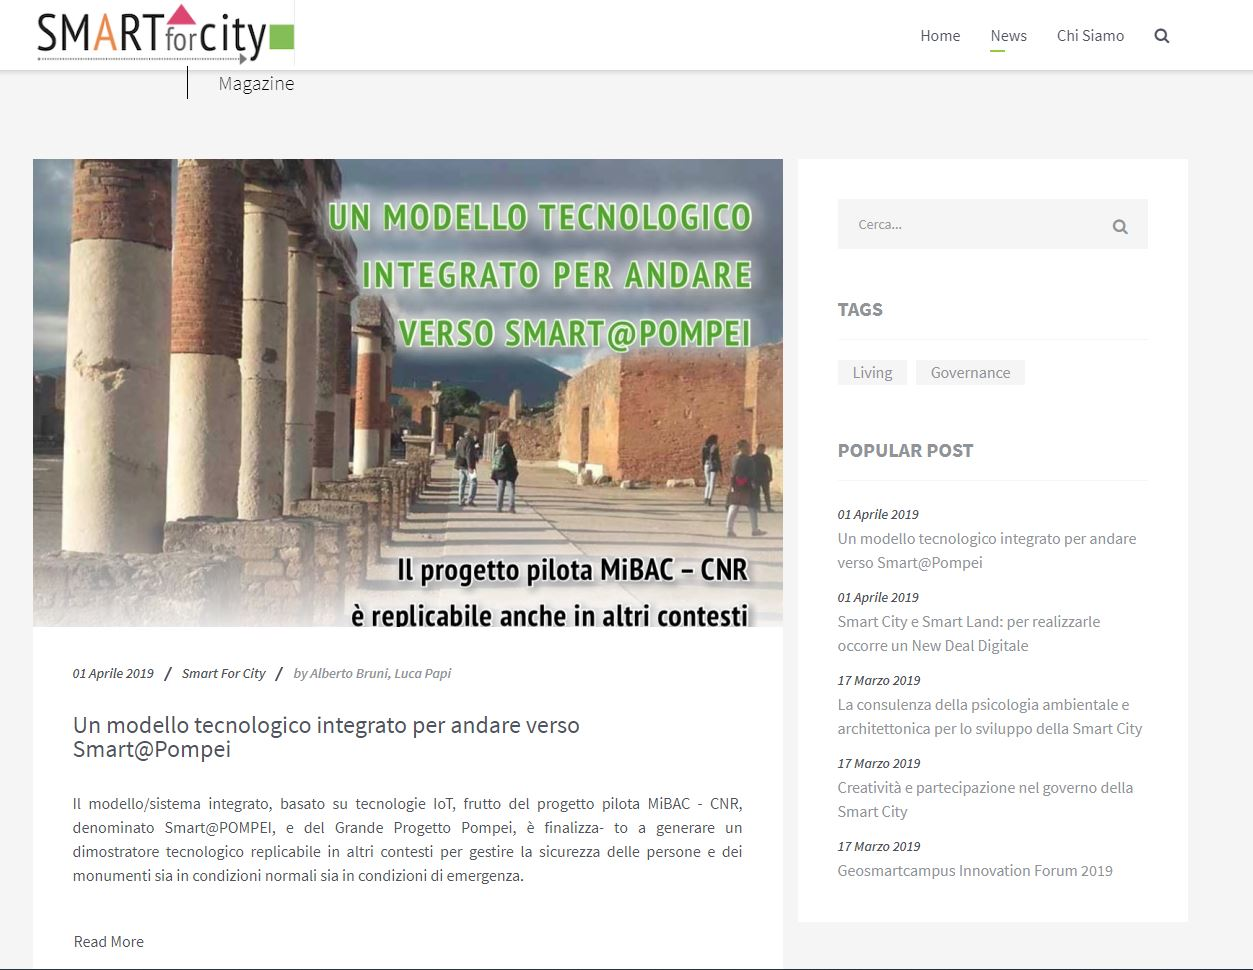 Smart for city